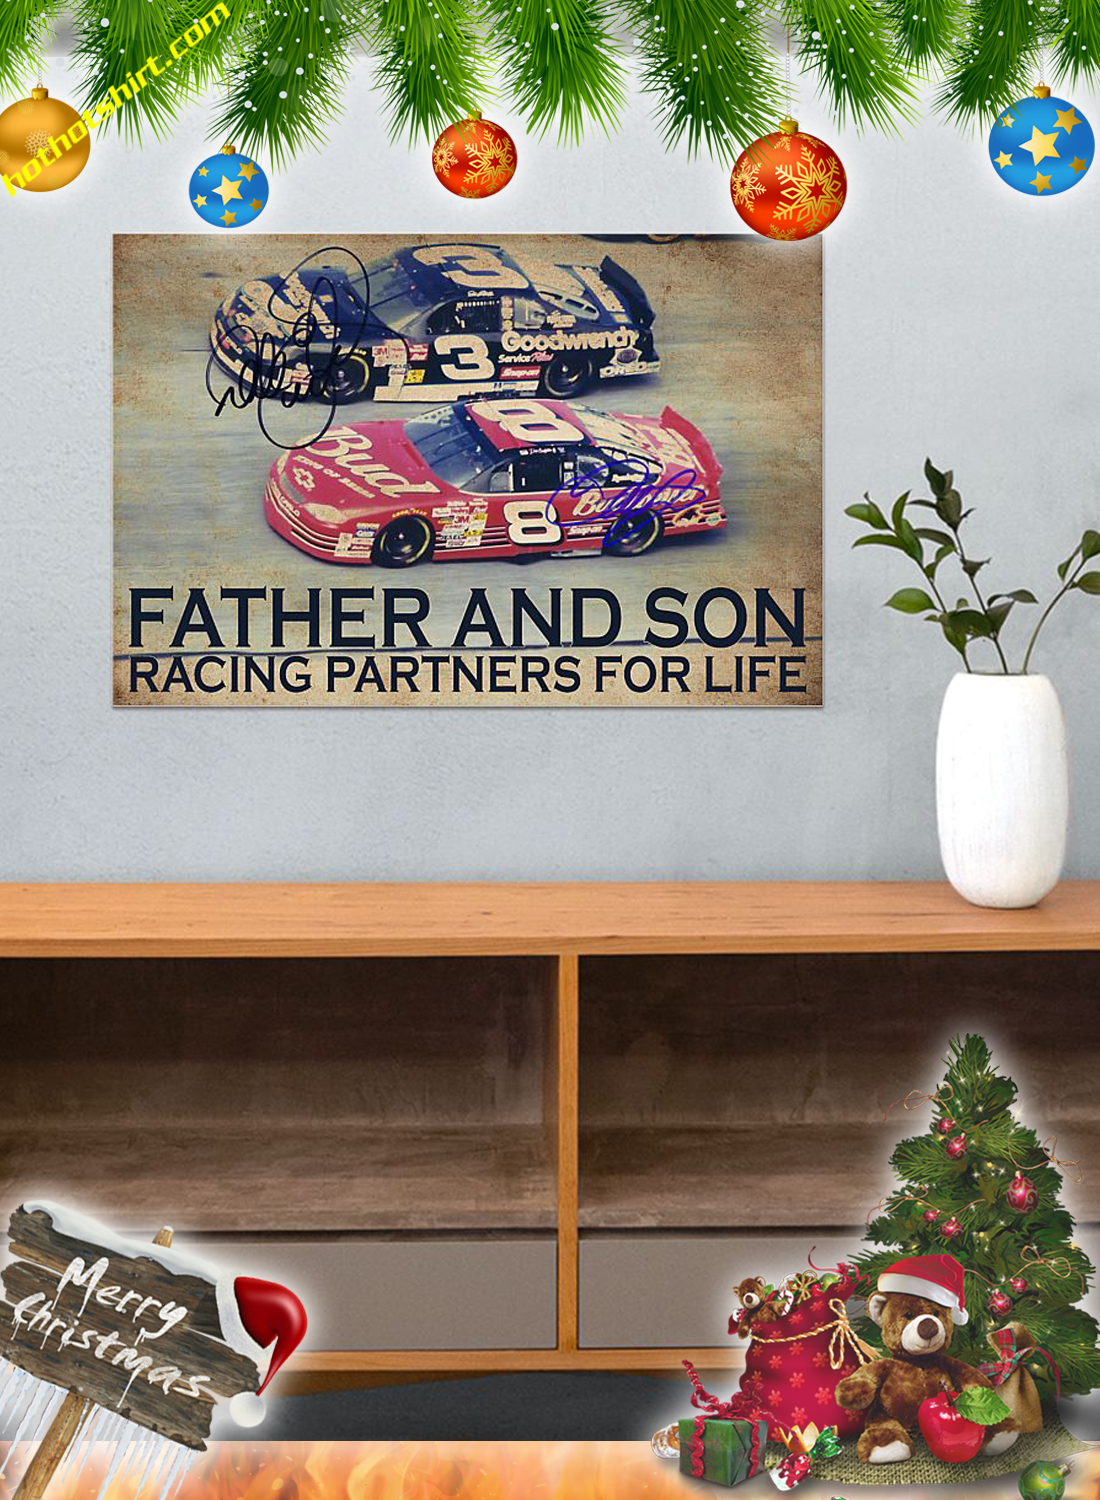 Father and son racing partners for life poster 3